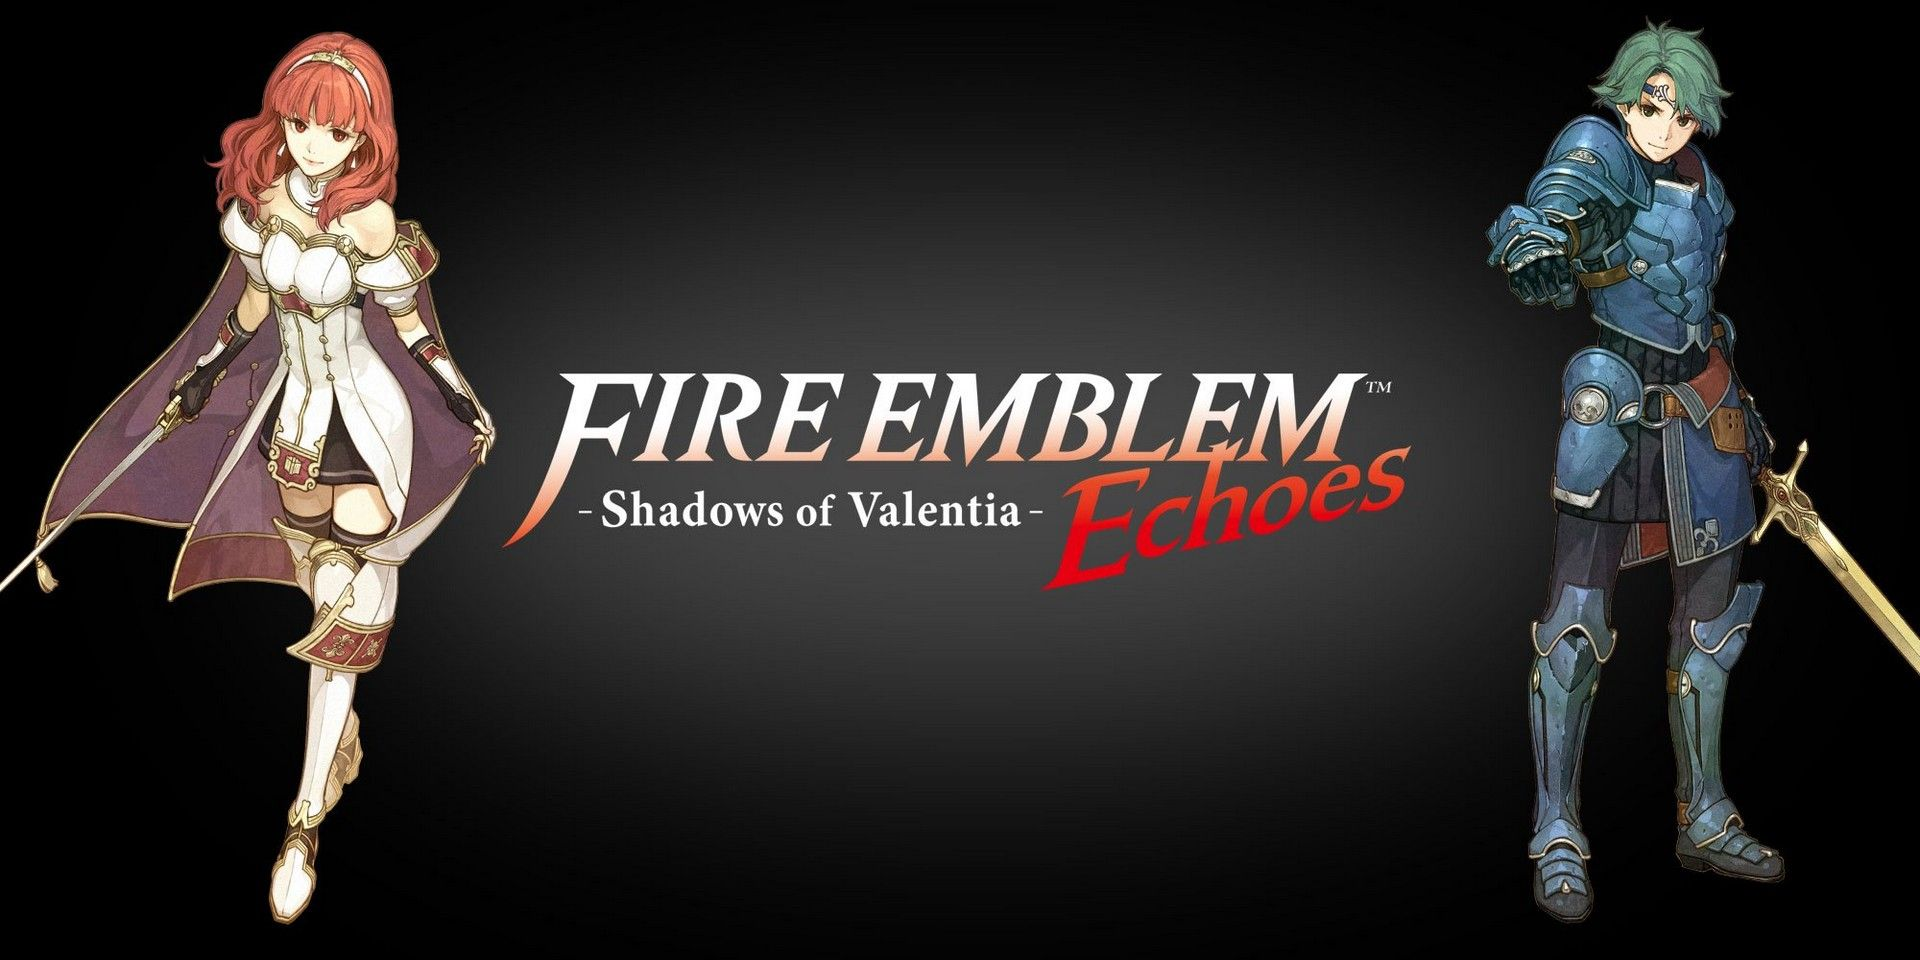 Fire Emblem Echoes Shadows Of Valentia Wallpapers Hd Fire